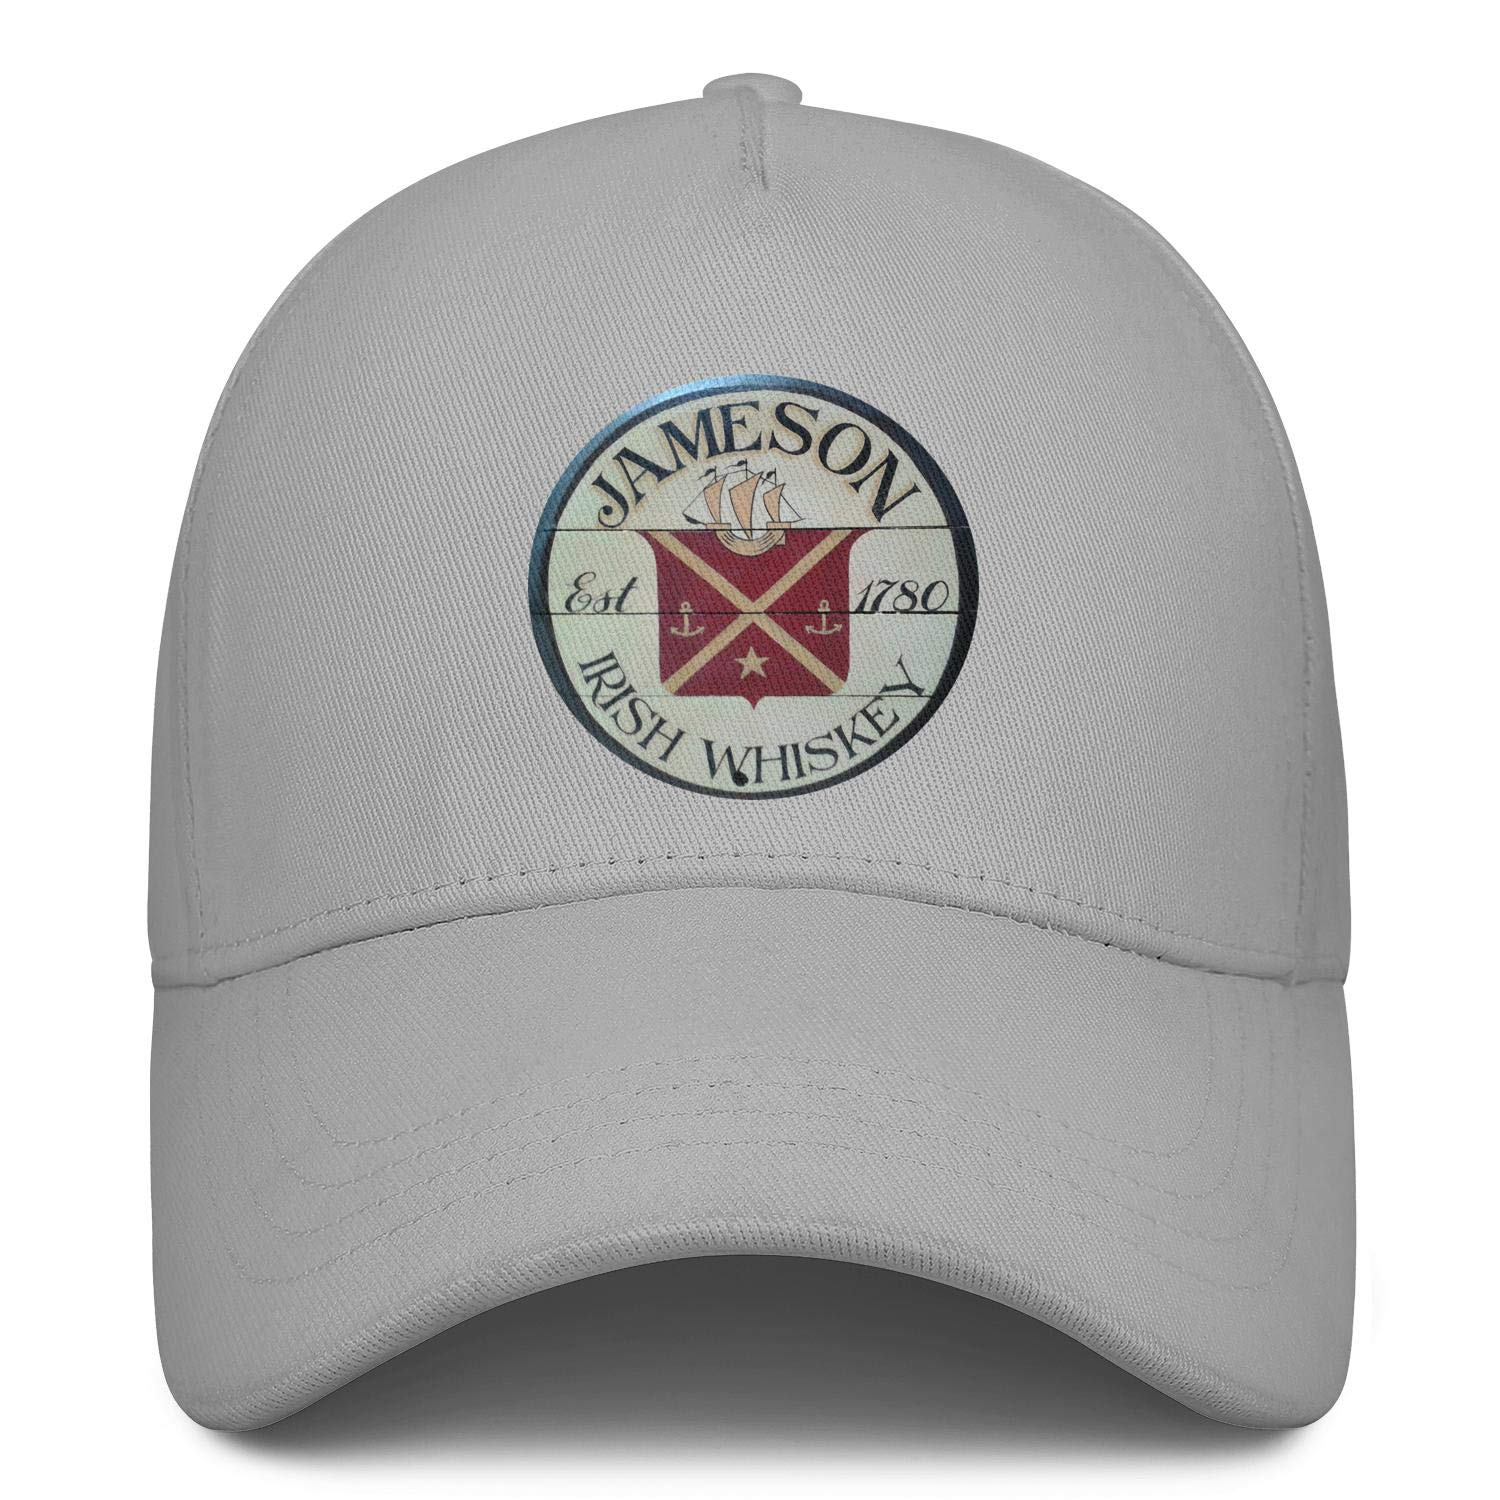 HIRGOEE Mens Woman Jameson-Irish-Whiskey Cap Casual Hiking Caps Hat